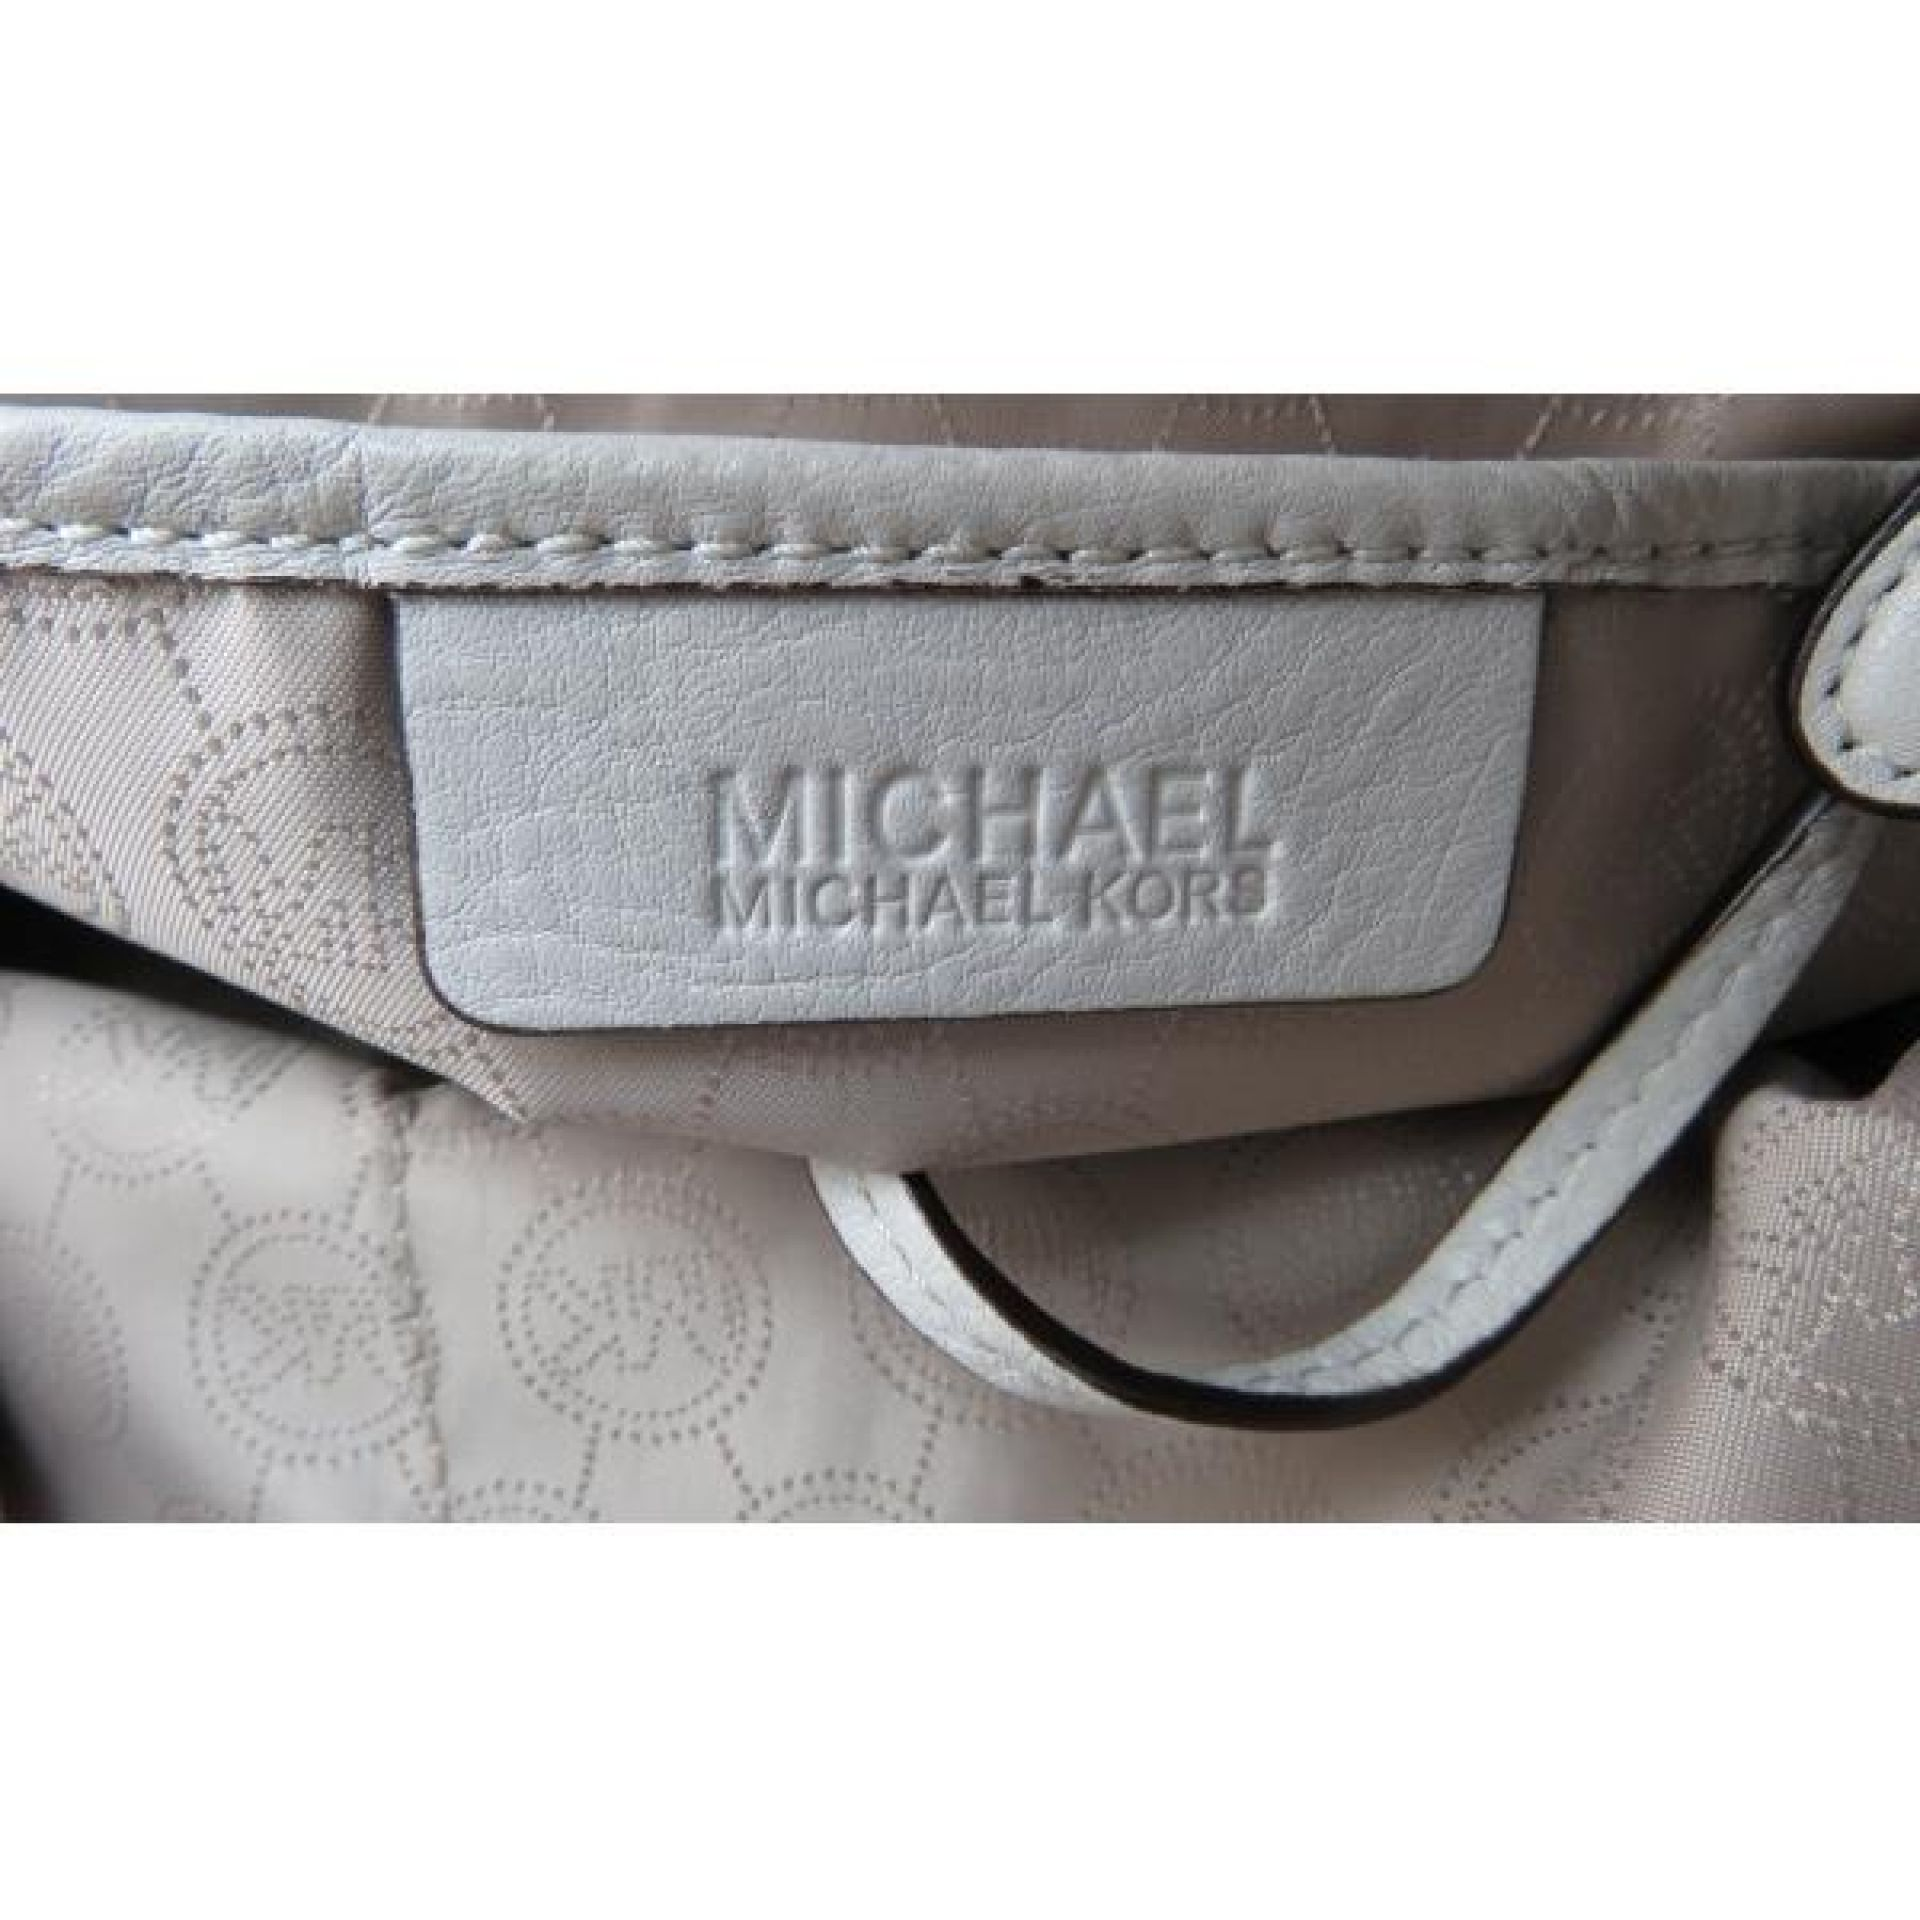 MICHAEL Michael Kors Ivory Soft Leather Chain Tote Bag